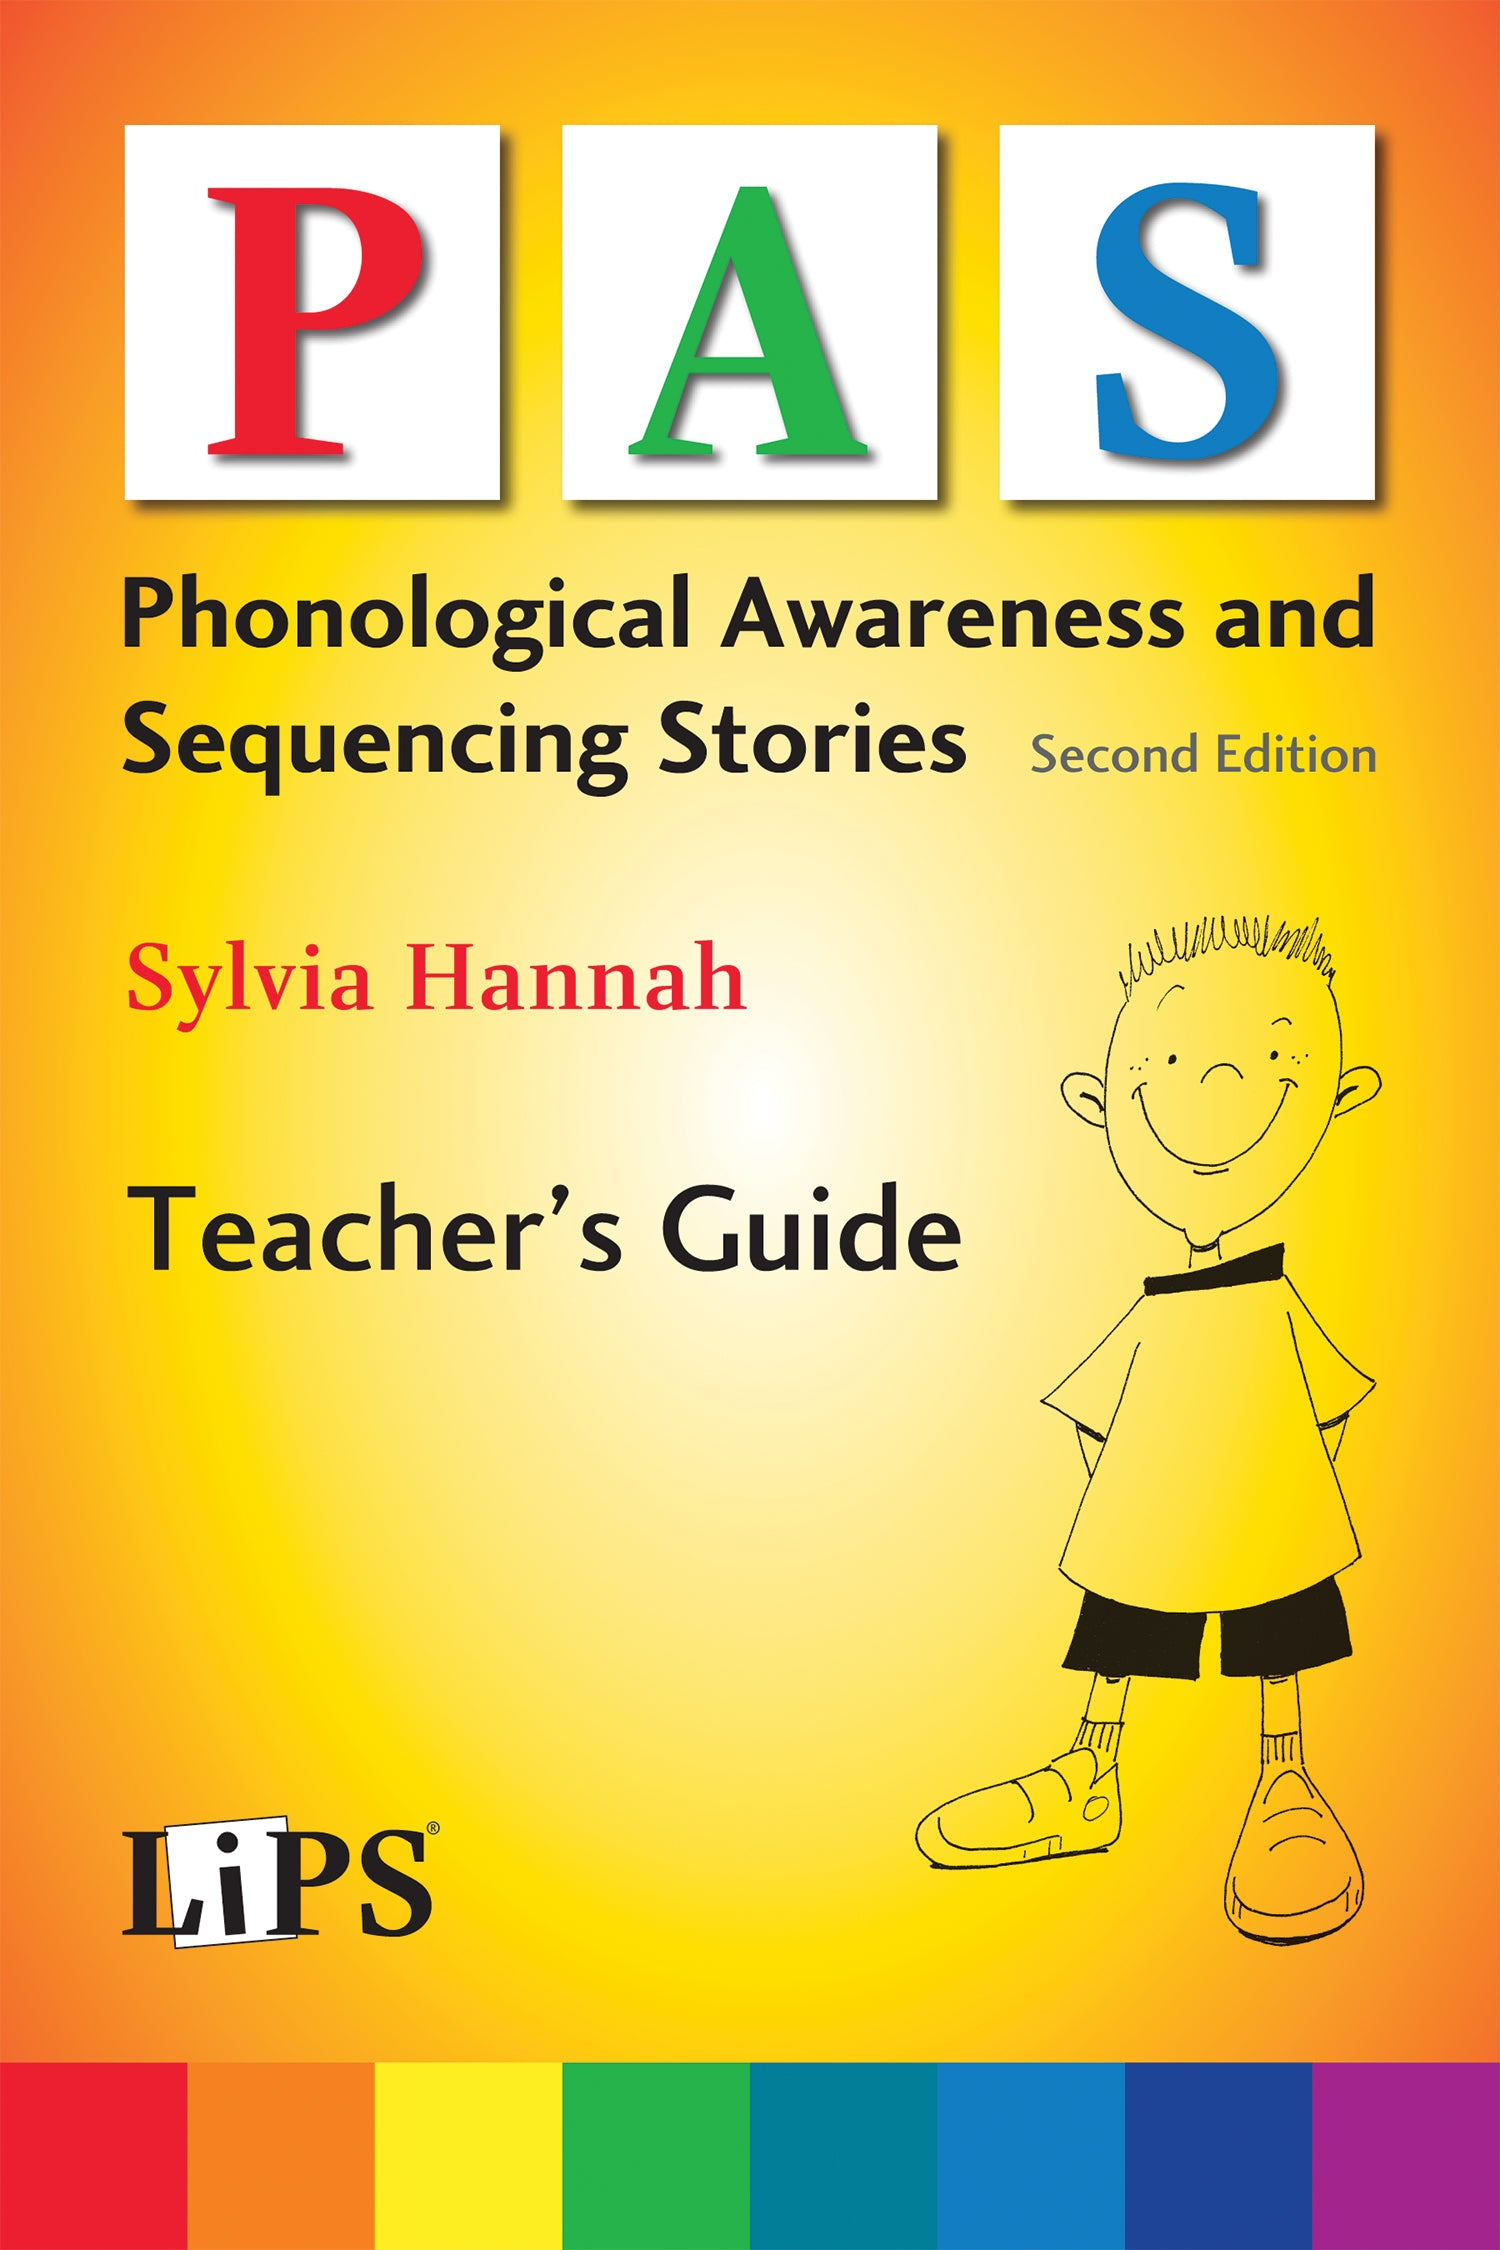 Phonological Awareness and Sequencing (PAS) Stories Teacher's Guide